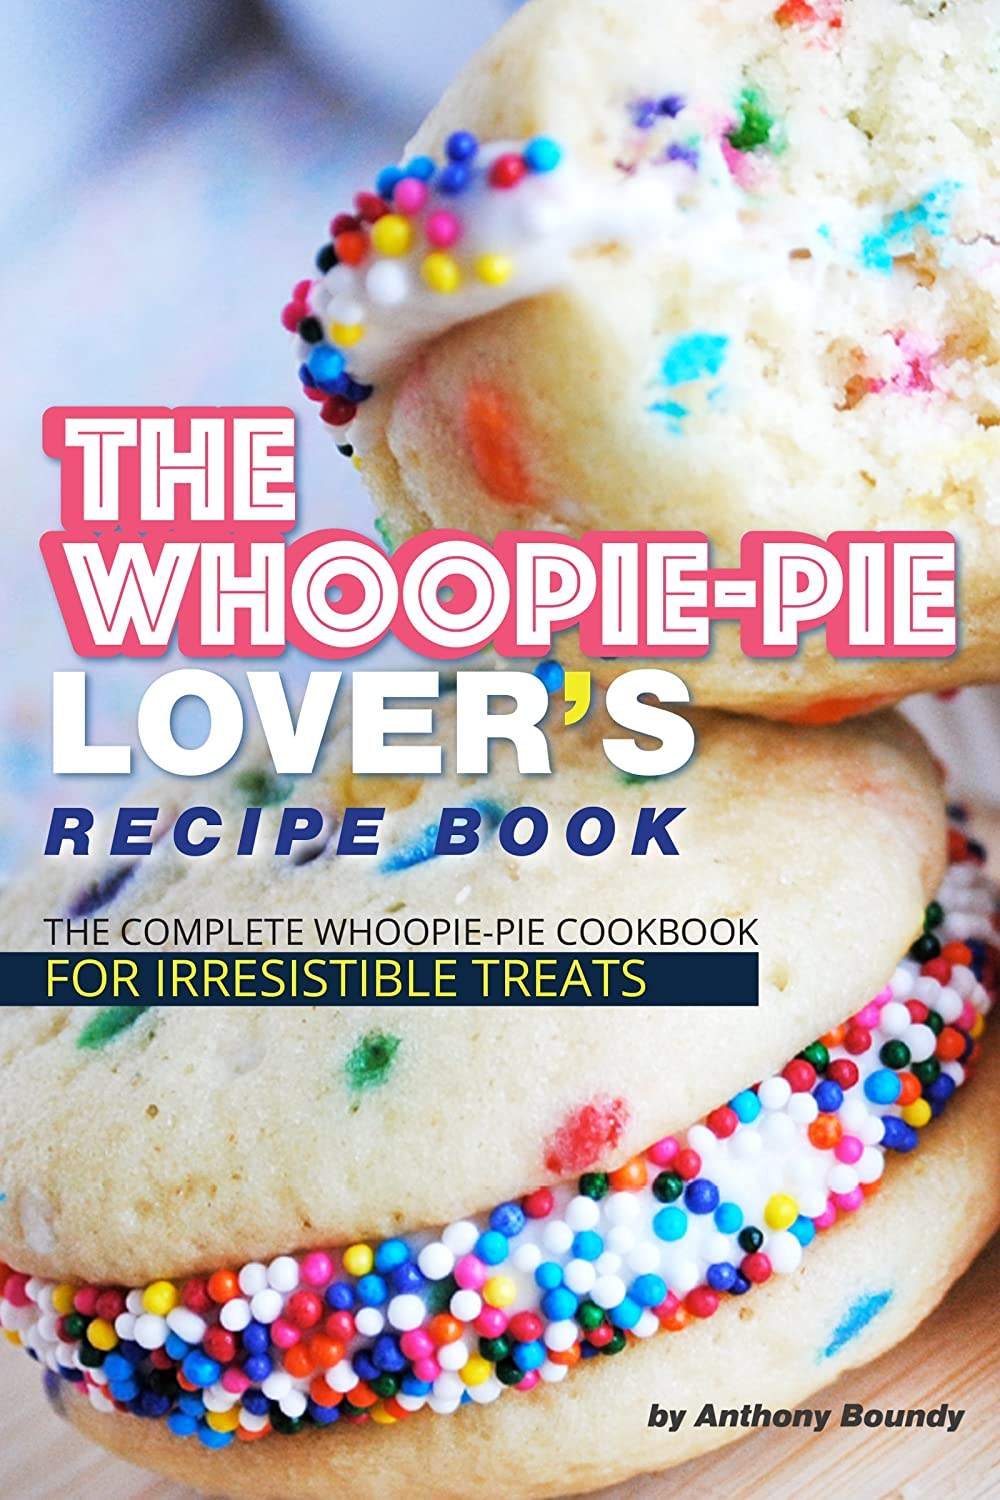 The Whoopie-Pie Lover's Recipe Book: The Complete Whoopie